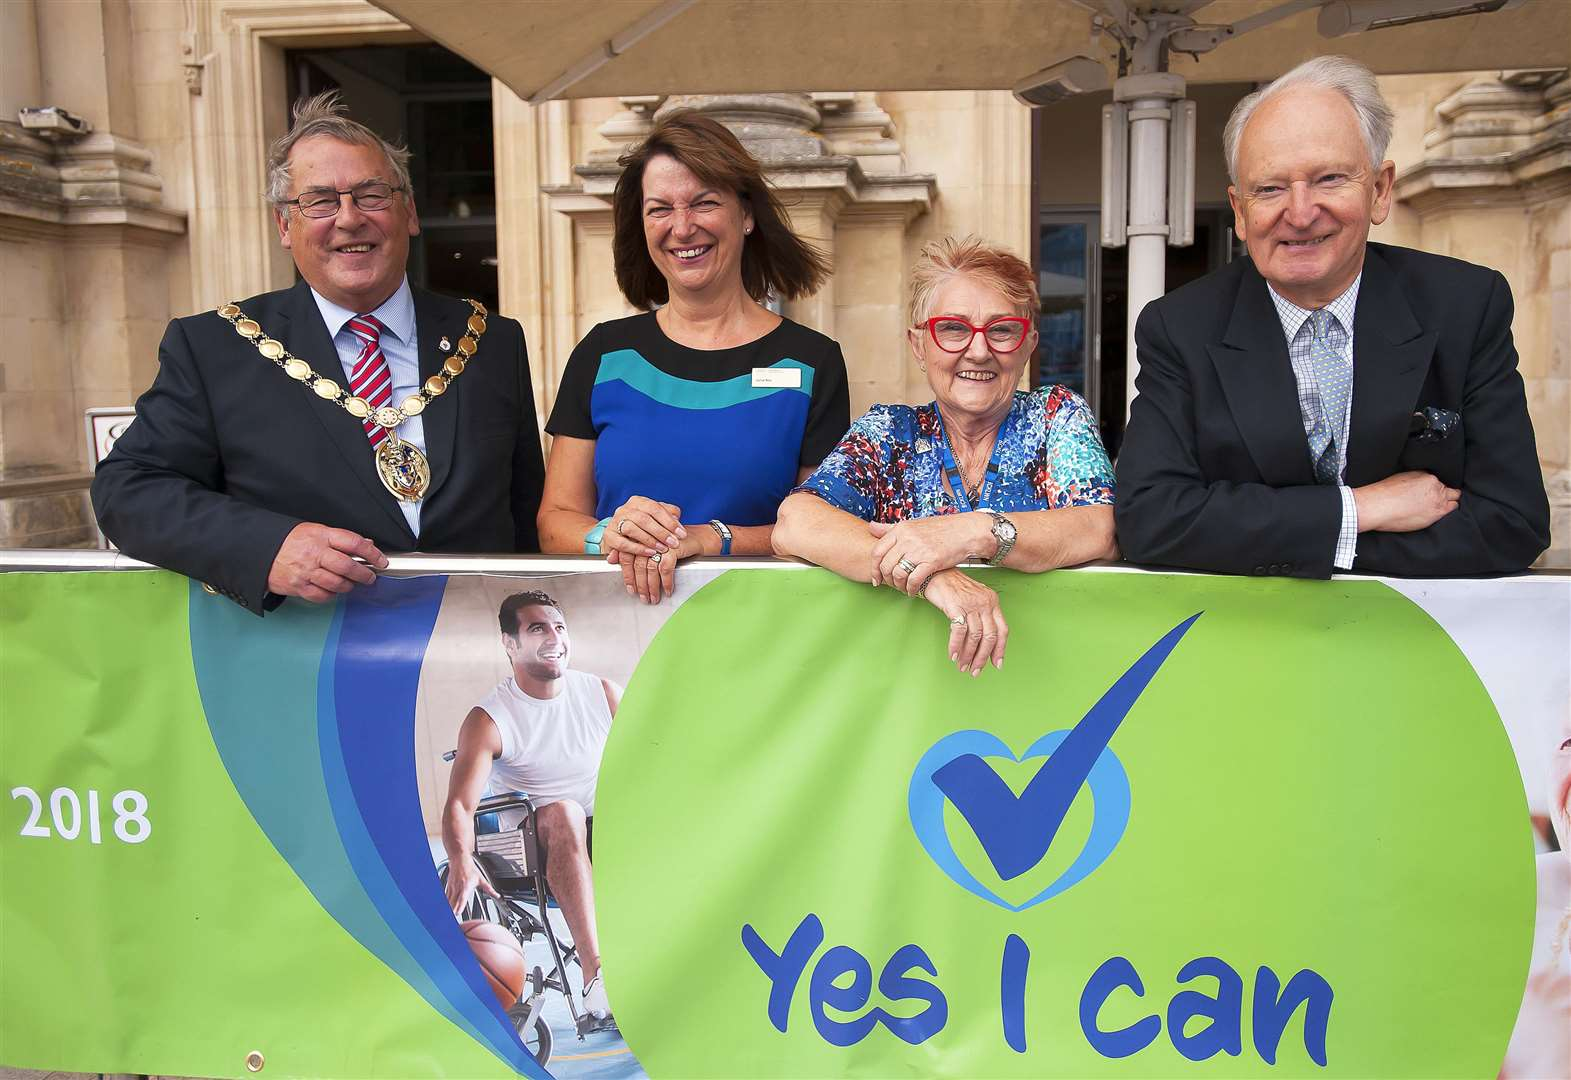 Spreading the 'Yes I Can' message at King's Lynn event